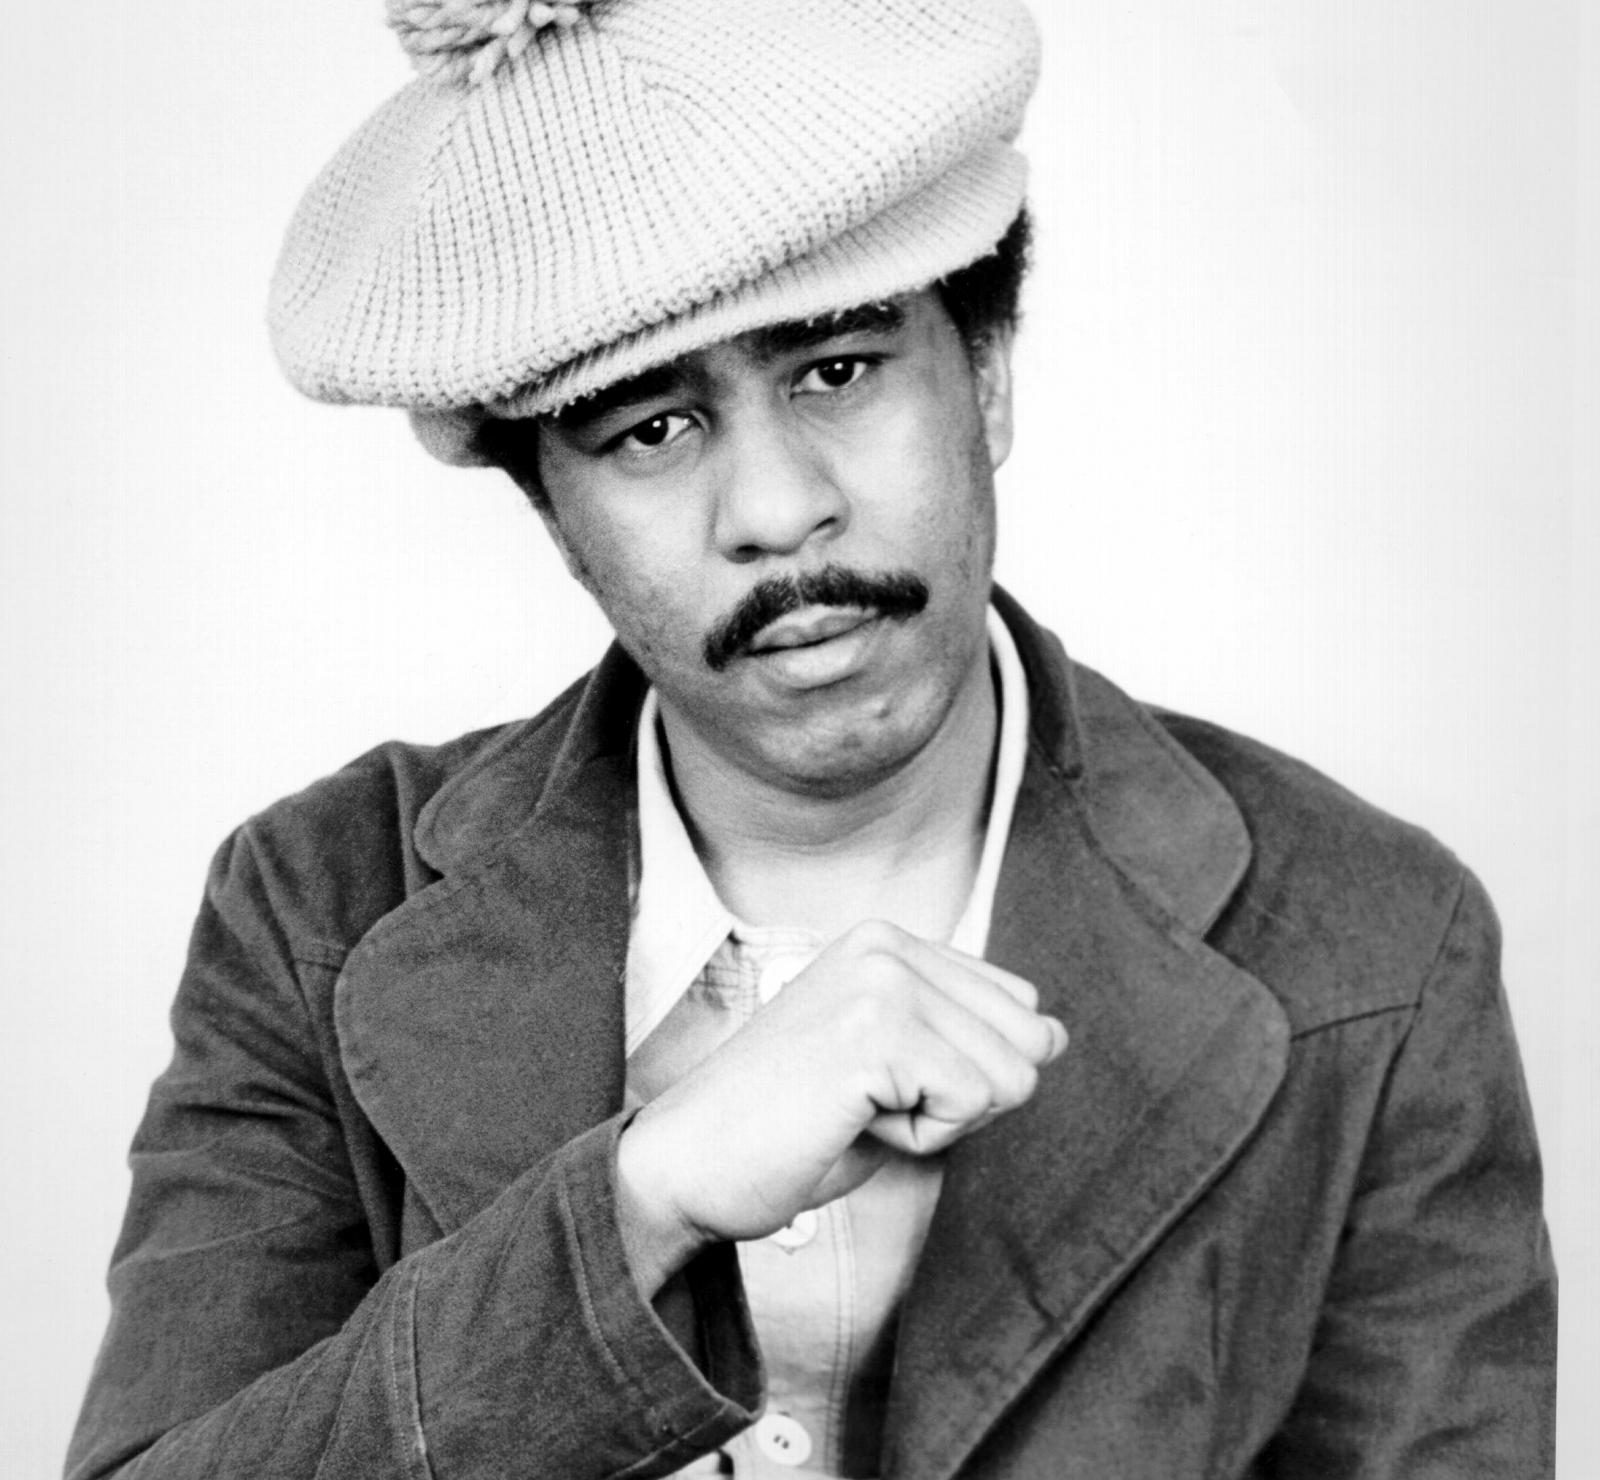 Richard Pryor making a fist black and white LARGE e1607618850322 20 Things You Might Not Have Known About Richard Pryor